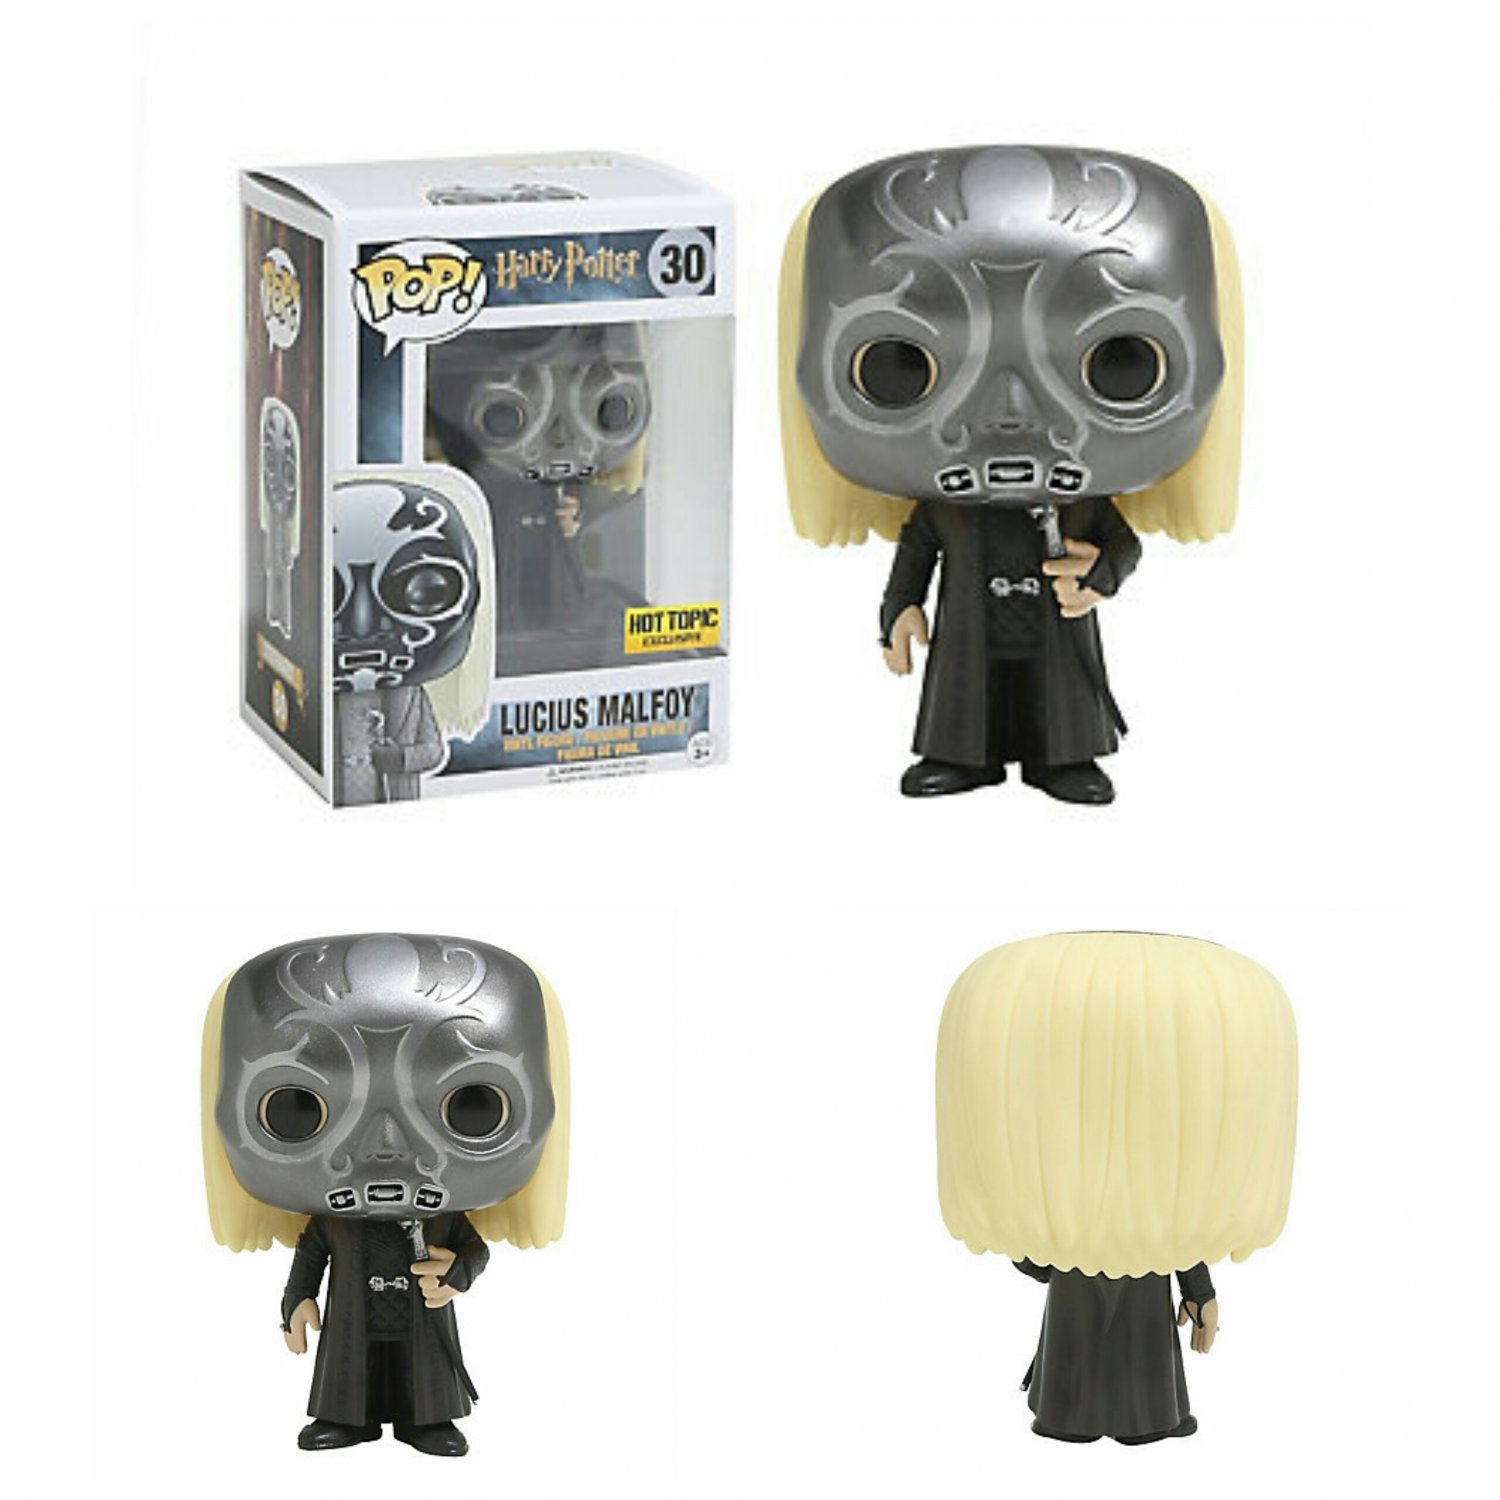 Funko Harry Potter POP! #300 Lucius Malfoy (Death Eater Mask) Vinyl Figure Hot Topic Exclusive